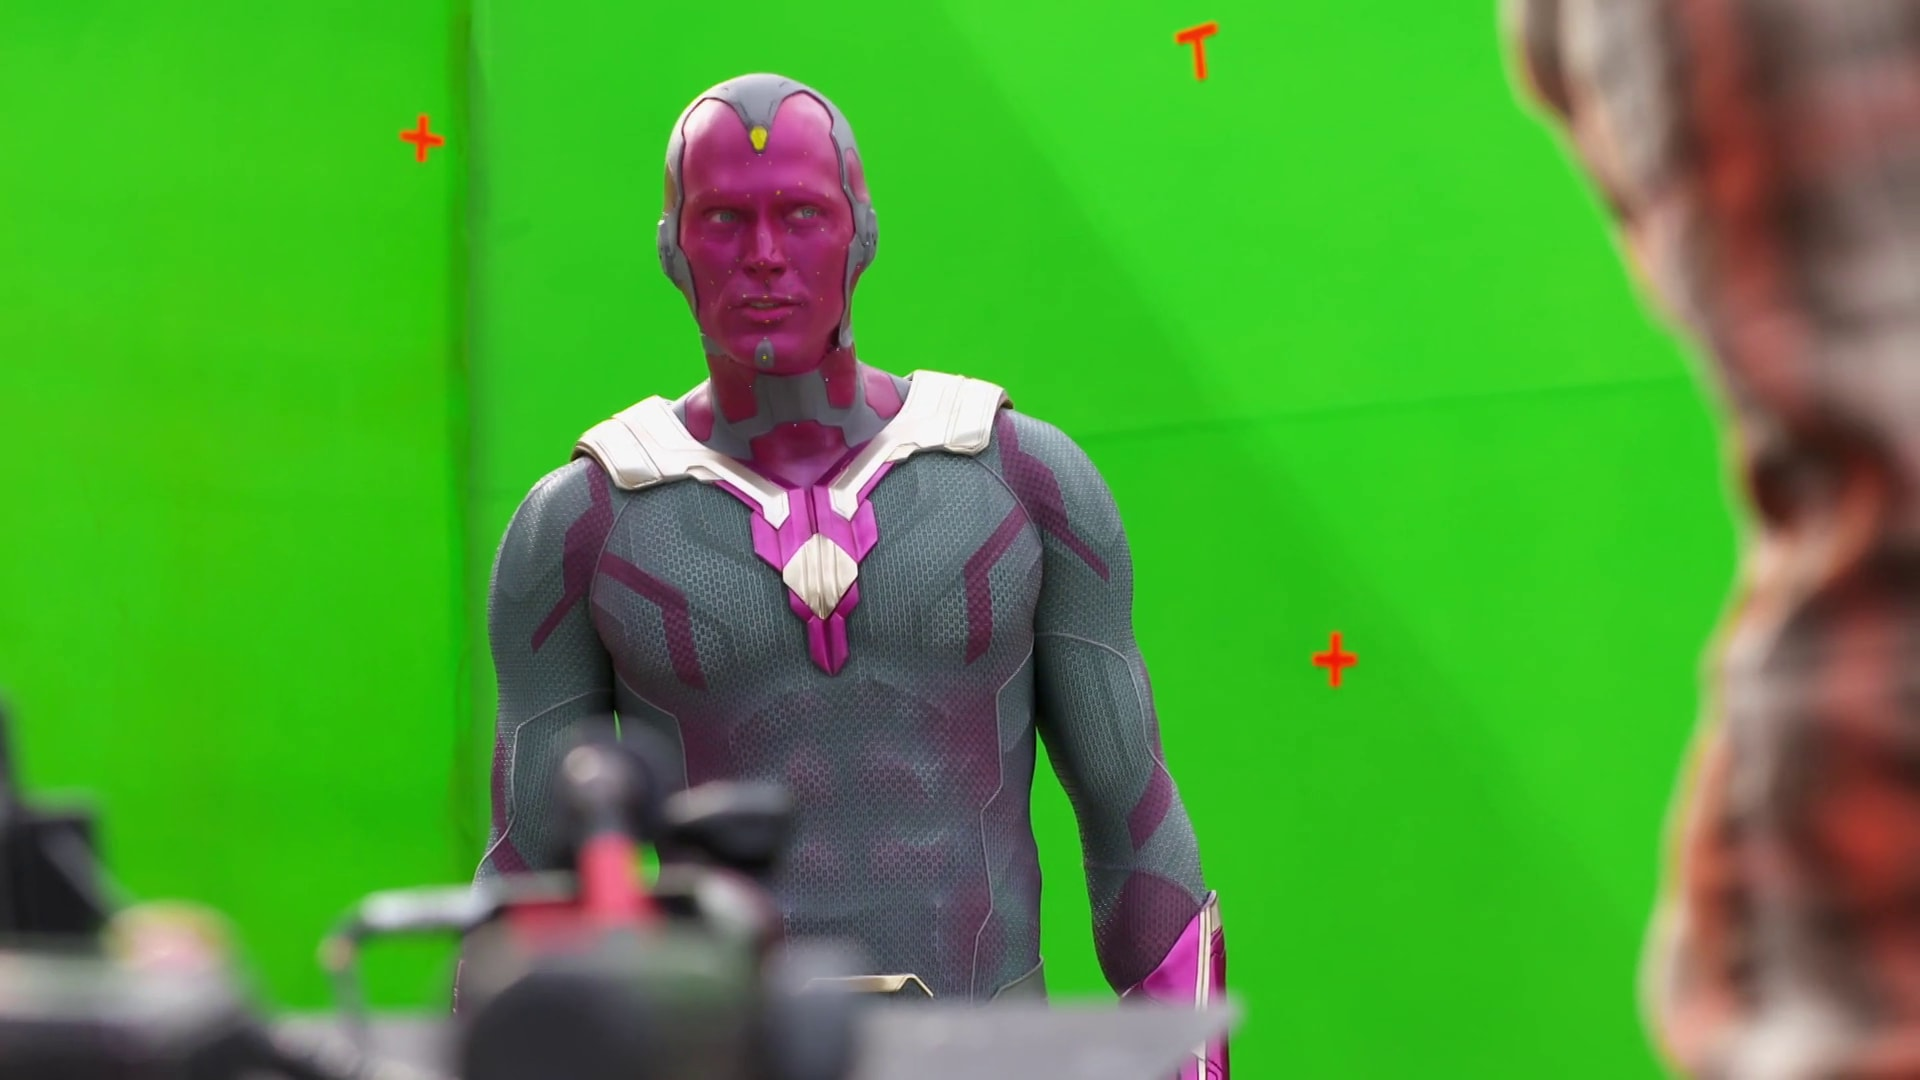 The Concept of Vision - Avengers: Age of Ultron Behind the Scenes